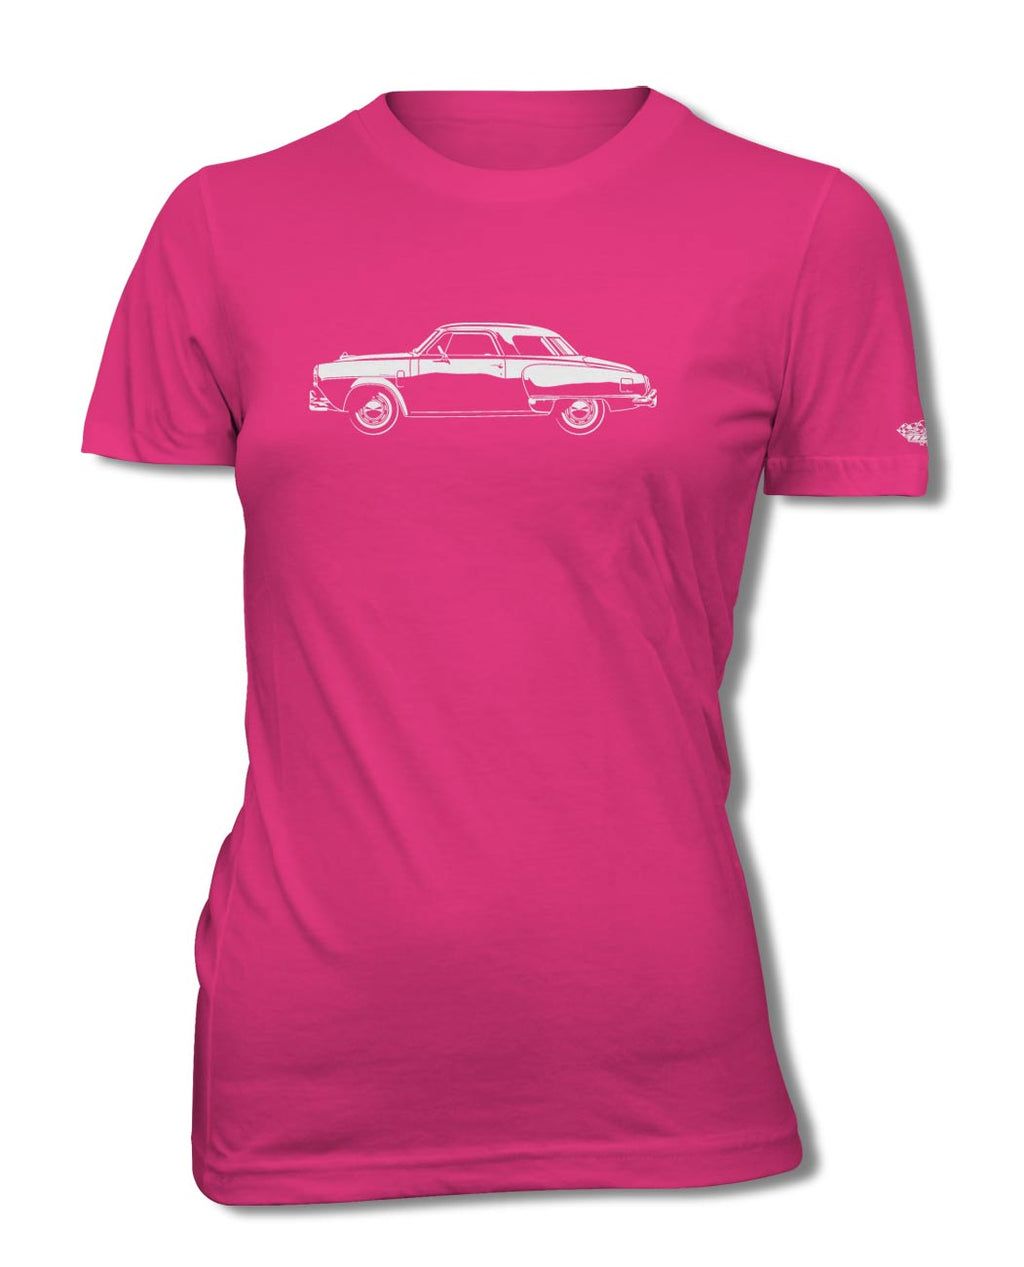 Studebaker Starlight Coupe 1950 T-Shirt - Women - Side View